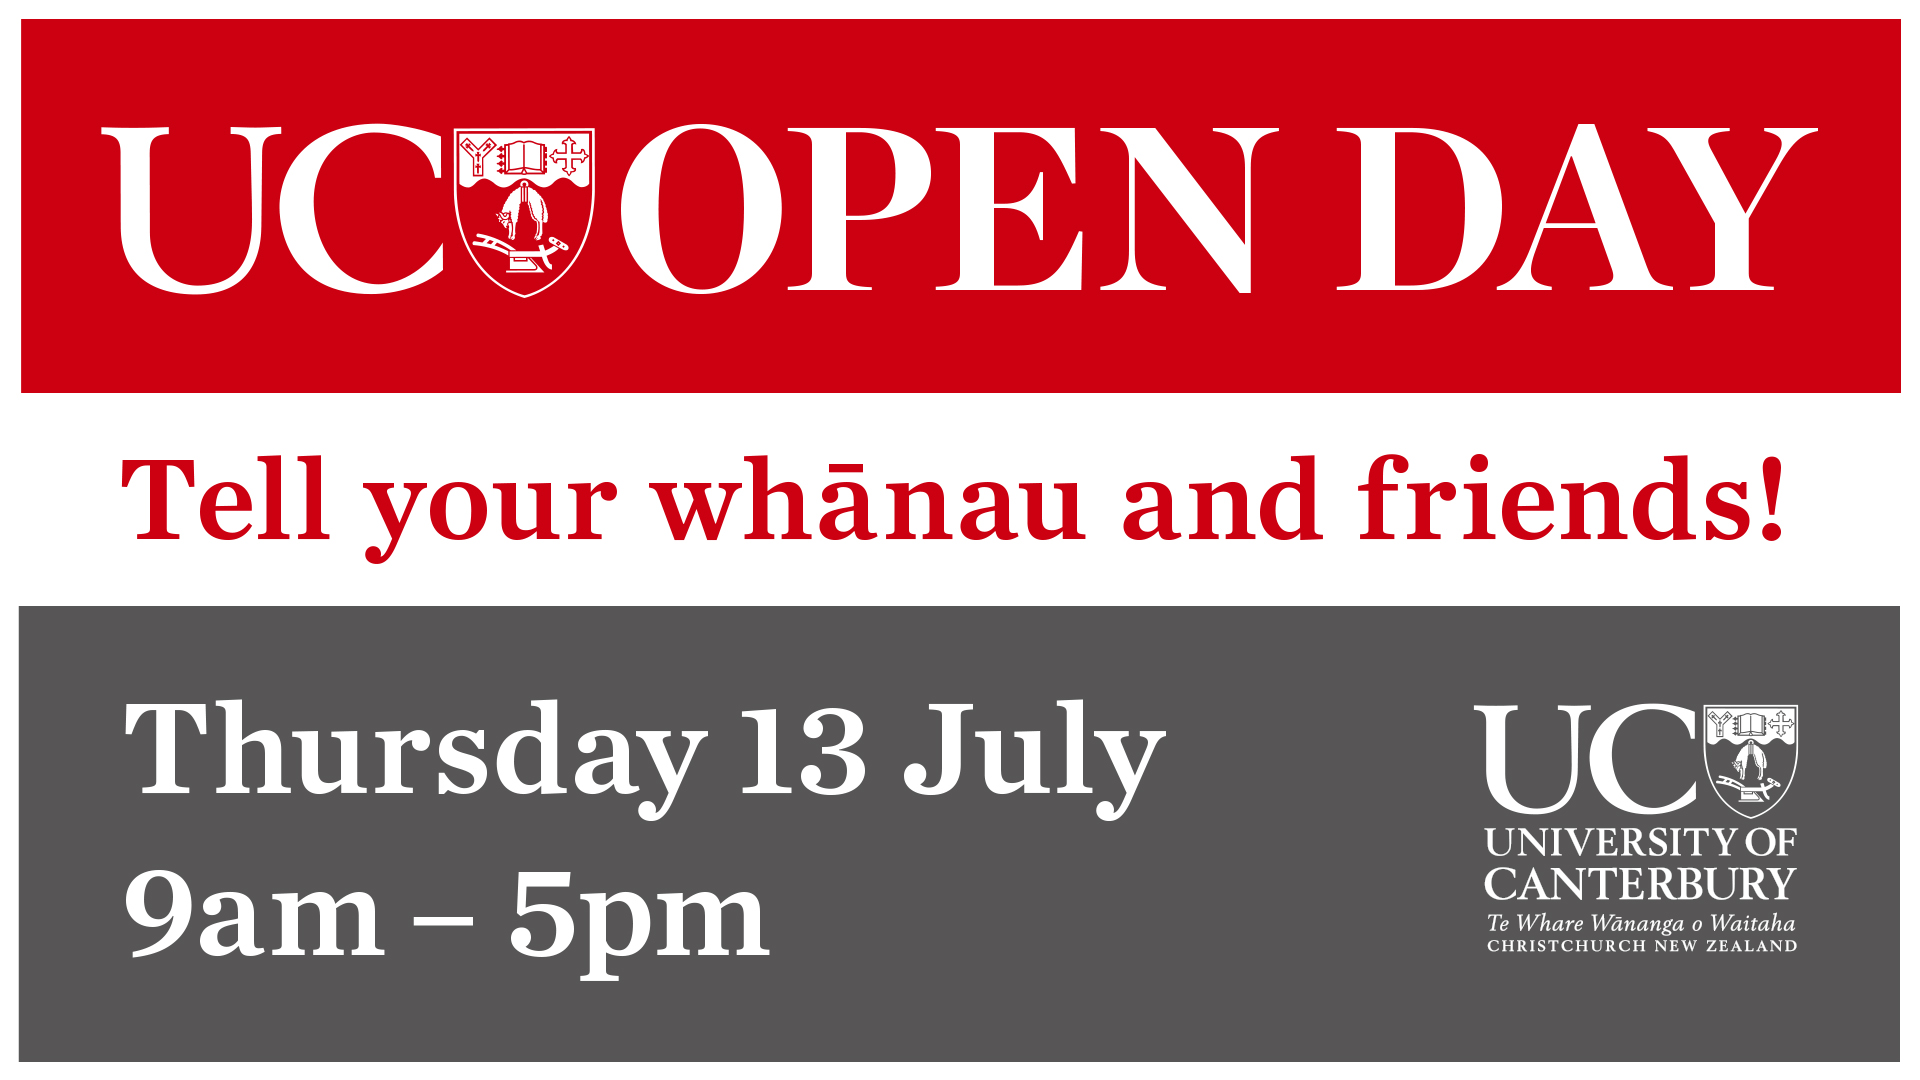 Open Day on 13 July